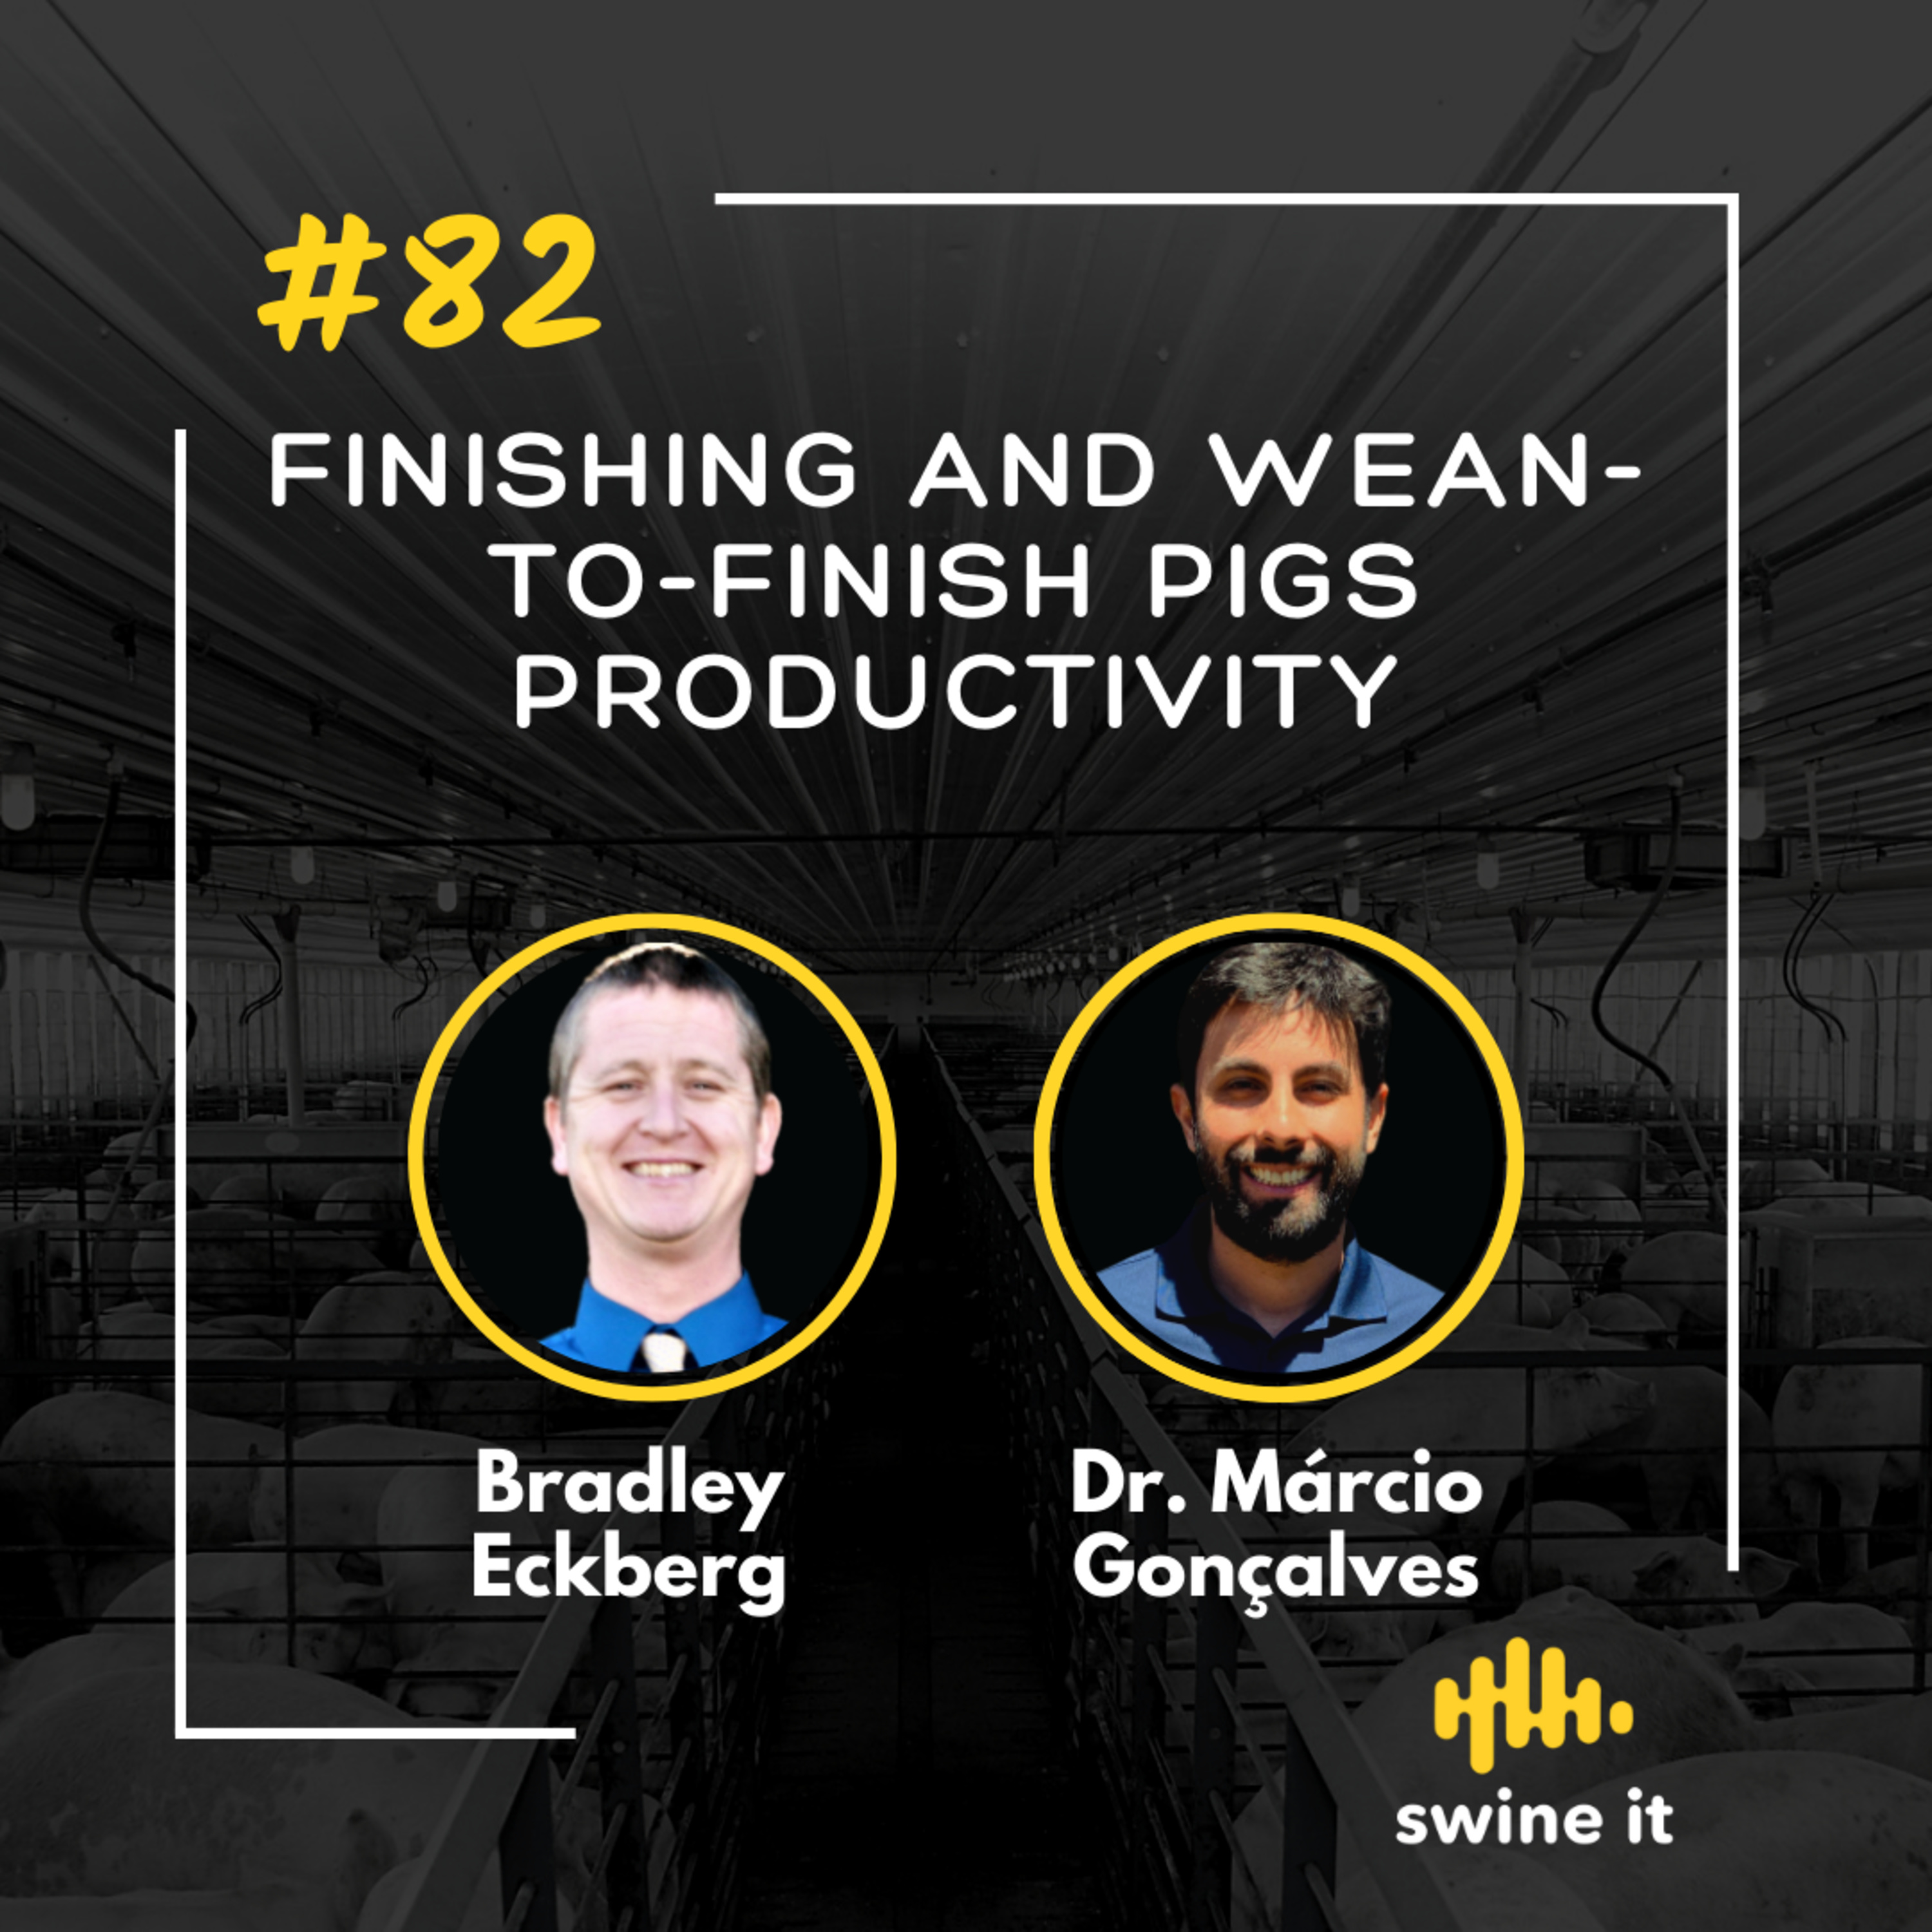 Finishing and wean-to-finish pigs productivity - Bradley Eckberg